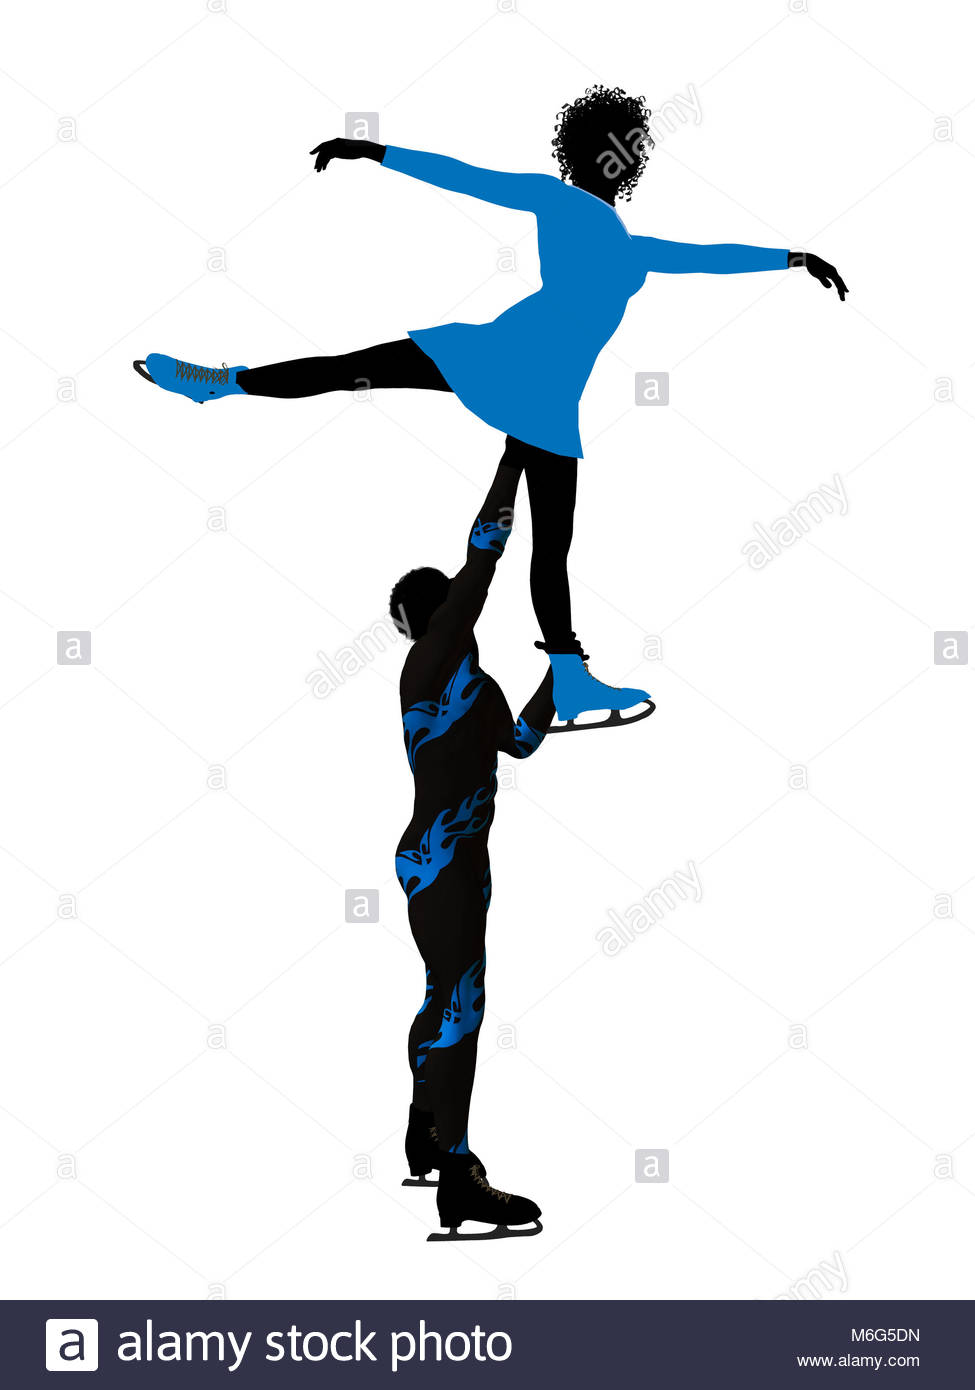 975x1390fricanmerican Couple Ice Skating Illustration Silhouette On